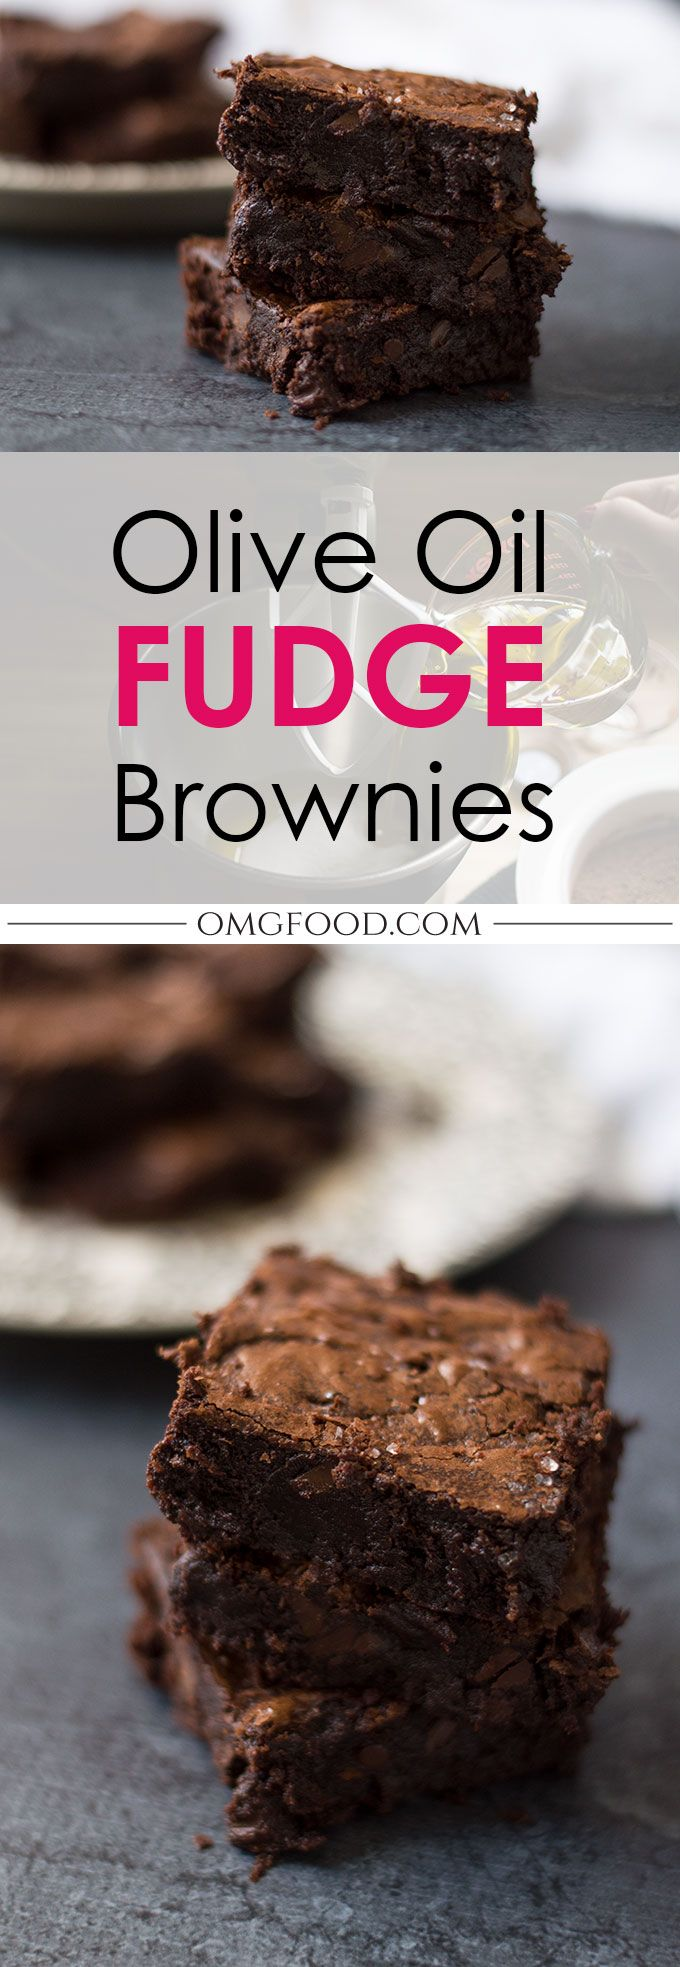 Olive Oil Fudge Brownies #oliveoils